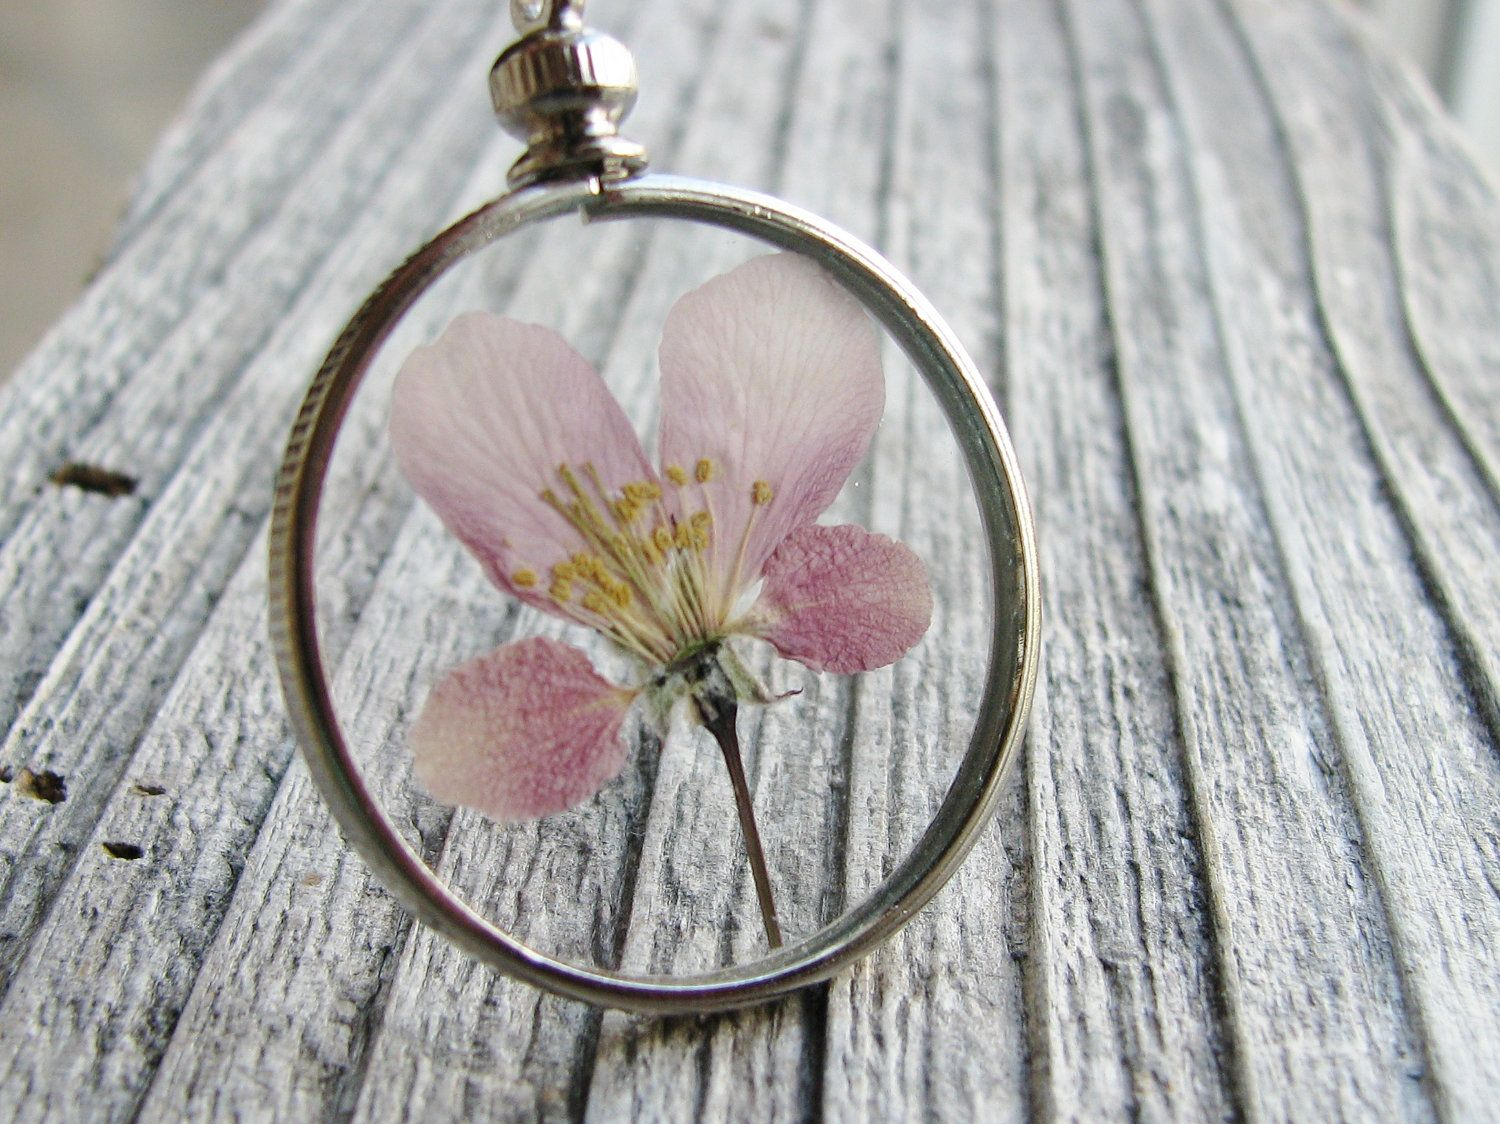 Framed flower pendant pressed flower glass necklace purple flowering framed flower pendant pressed flower glass necklace purple flowering crabapple tree sterling silver chain nature inspired mozeypictures Choice Image